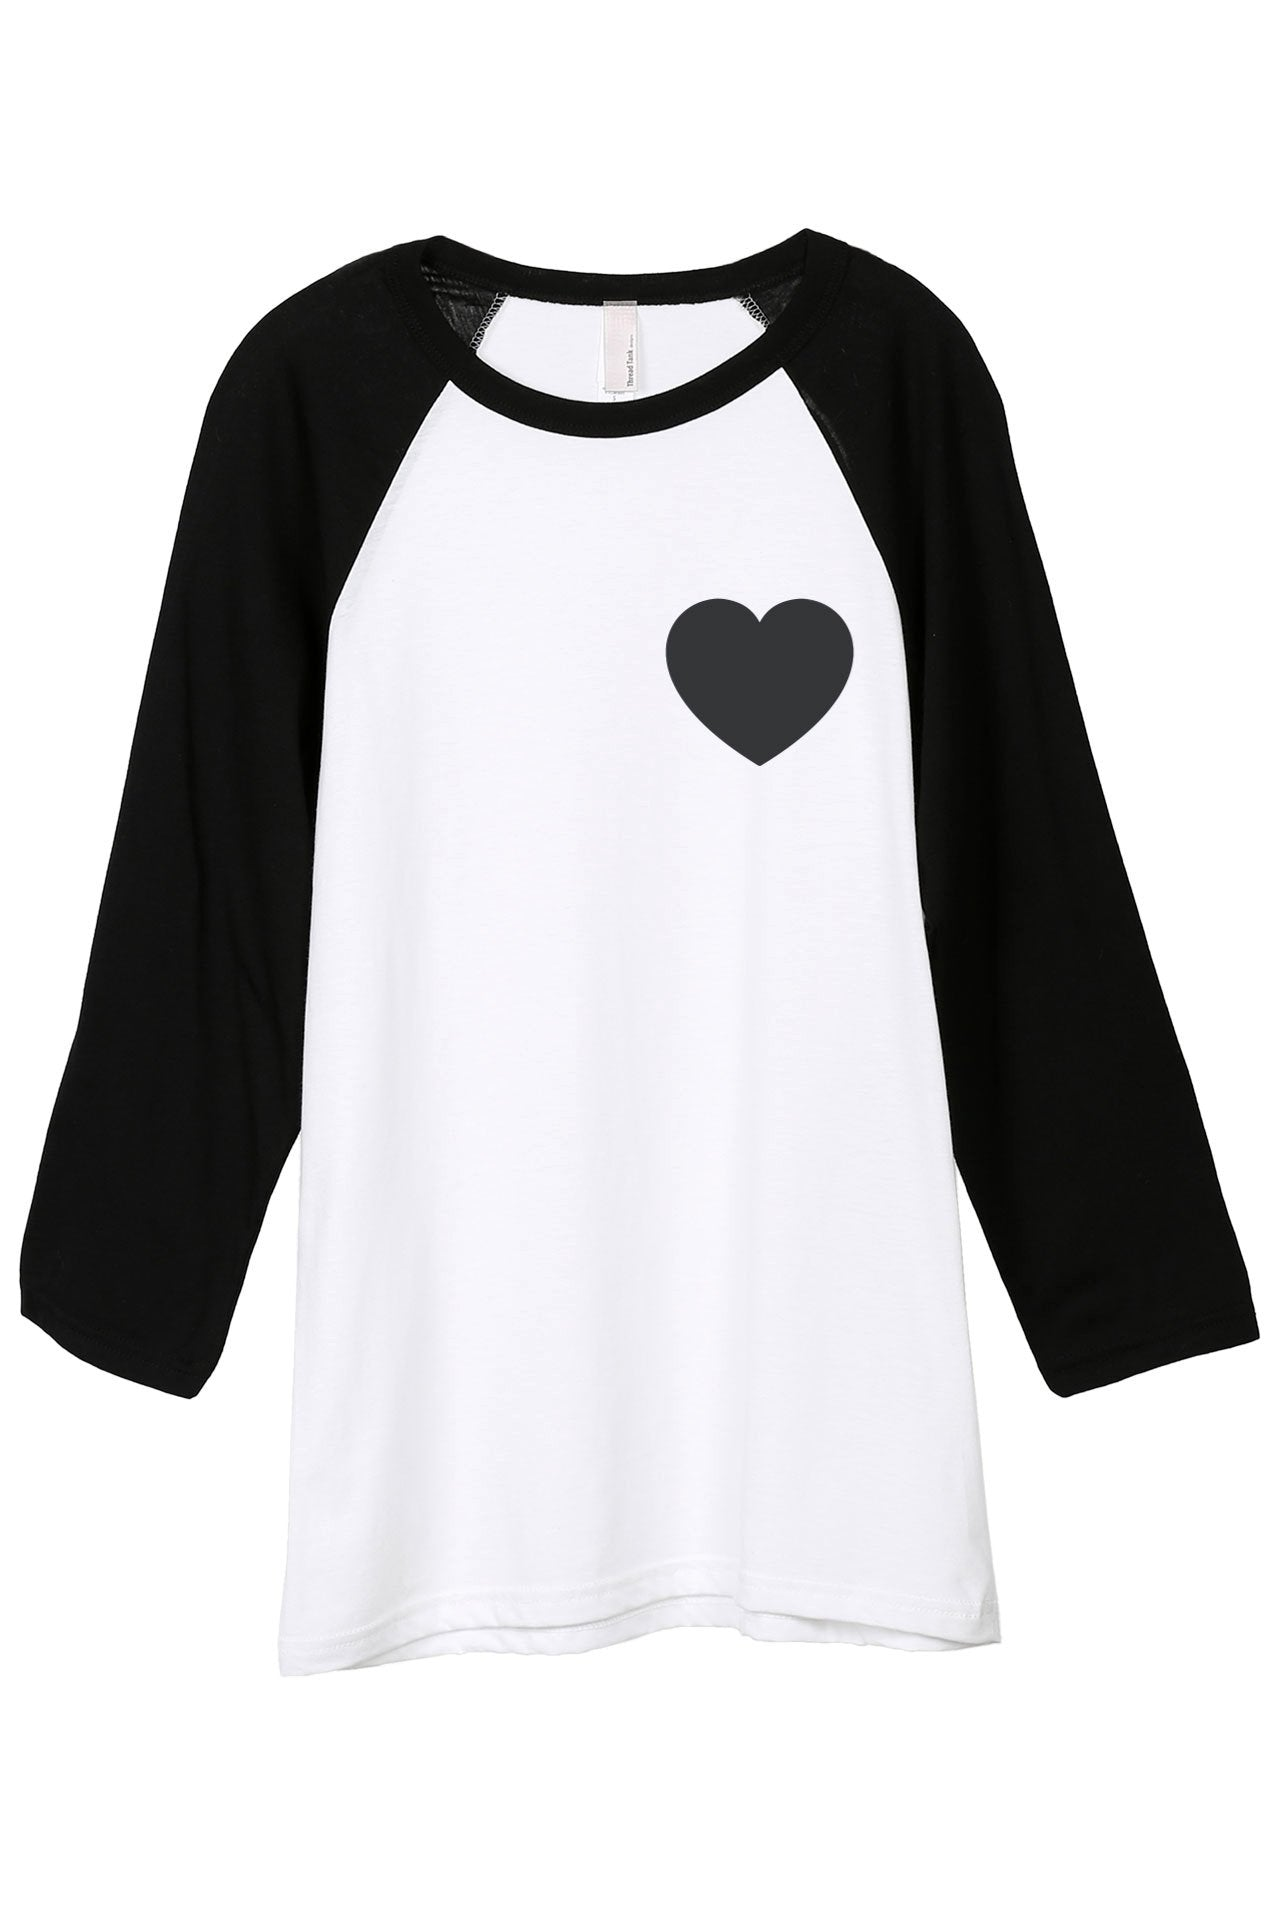 Small Heart Women White Black 3/4 Sleeves Raglan Baseball Tee Top